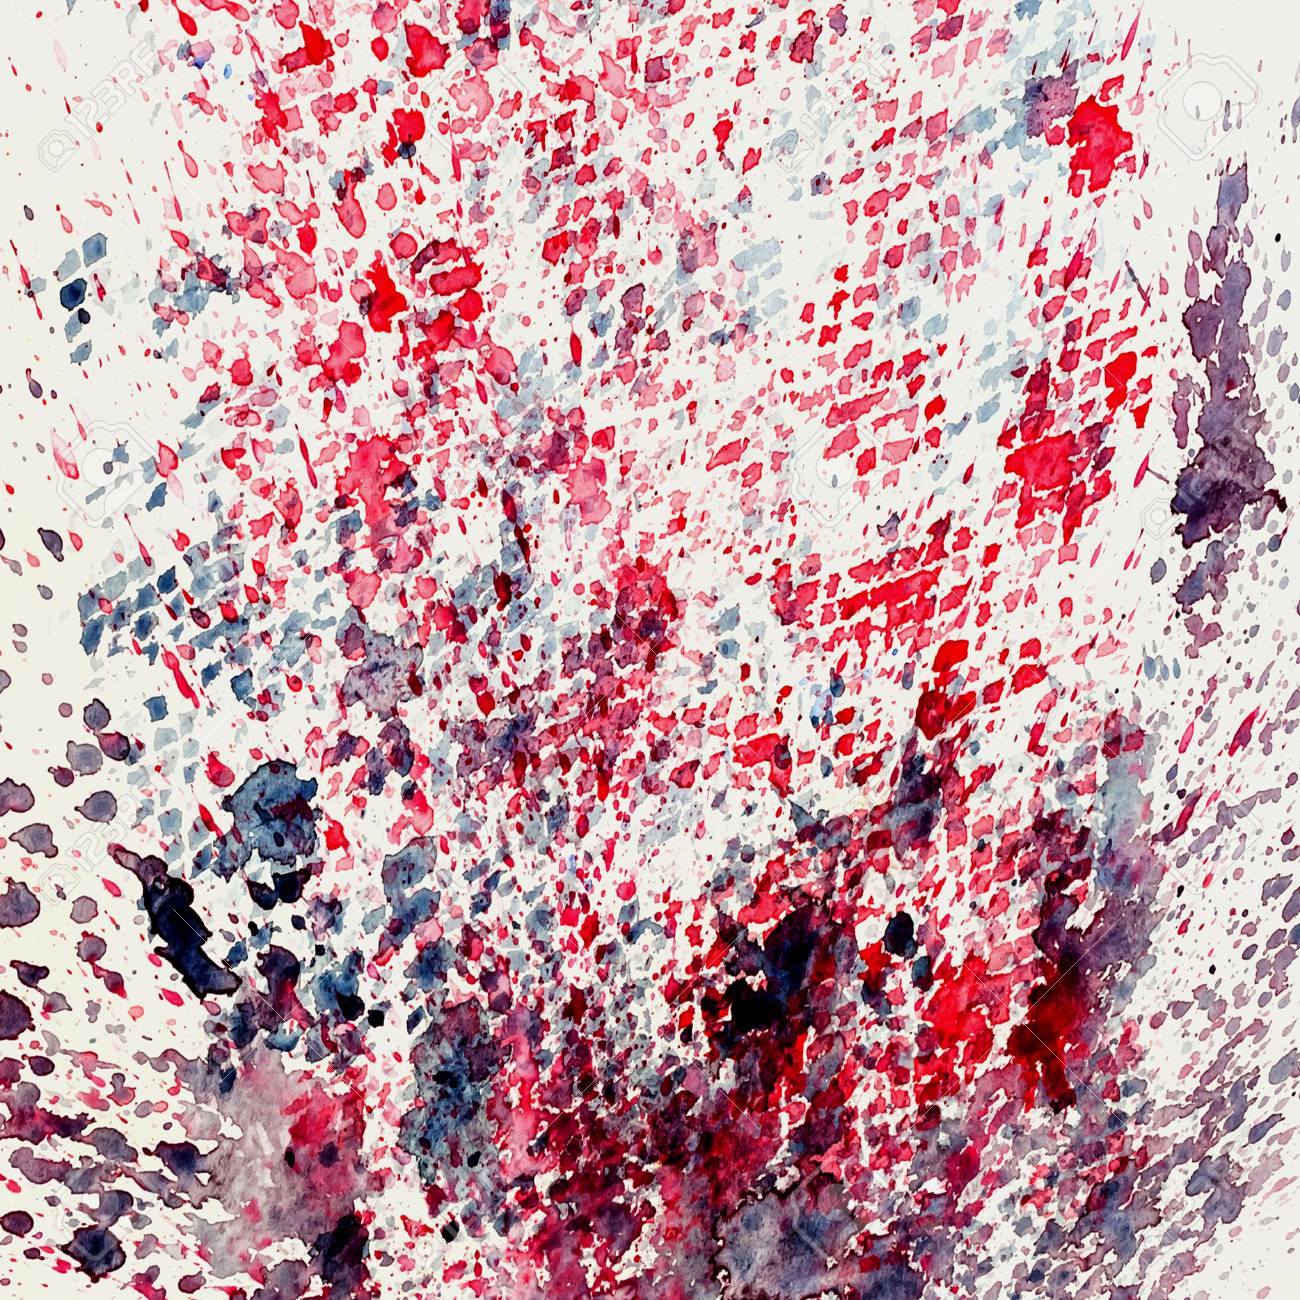 Watercolor abstract background painting, hand drawn on paper